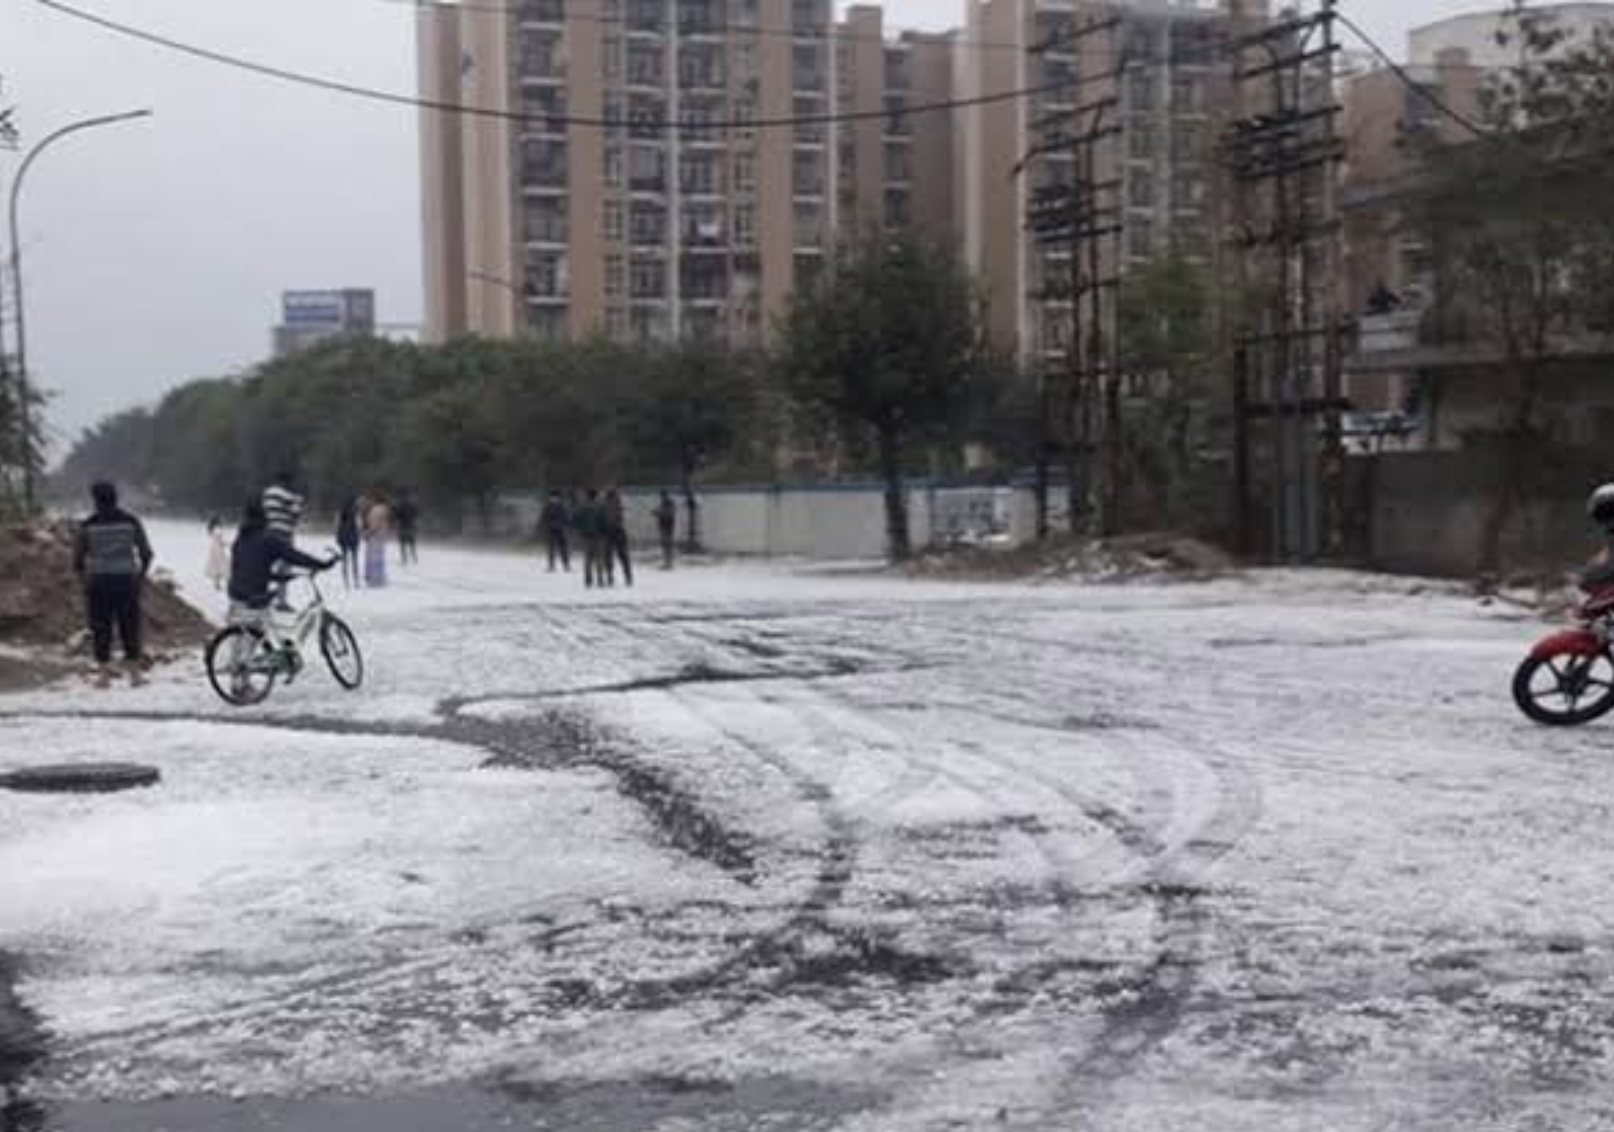 Delhi hail storm: 'Once a decade' freak downpour coats Indian capital in white